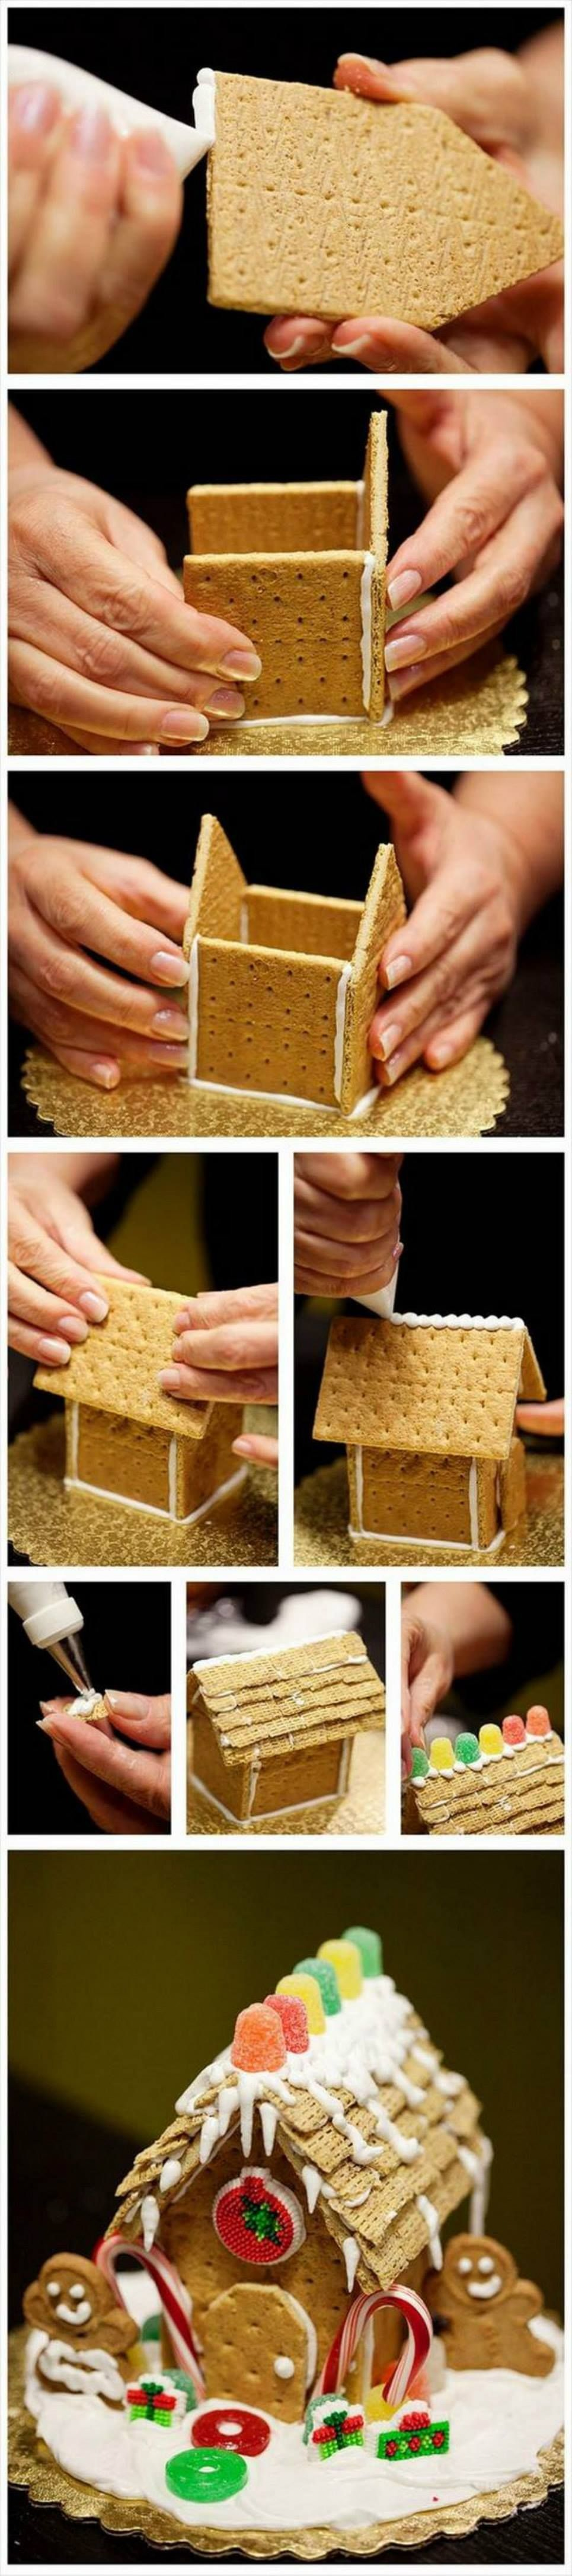 38 clever christmas food hacks that will make your life so much graham cracker house dont make a large gingerbread house each person can decorate their own solutioingenieria Image collections